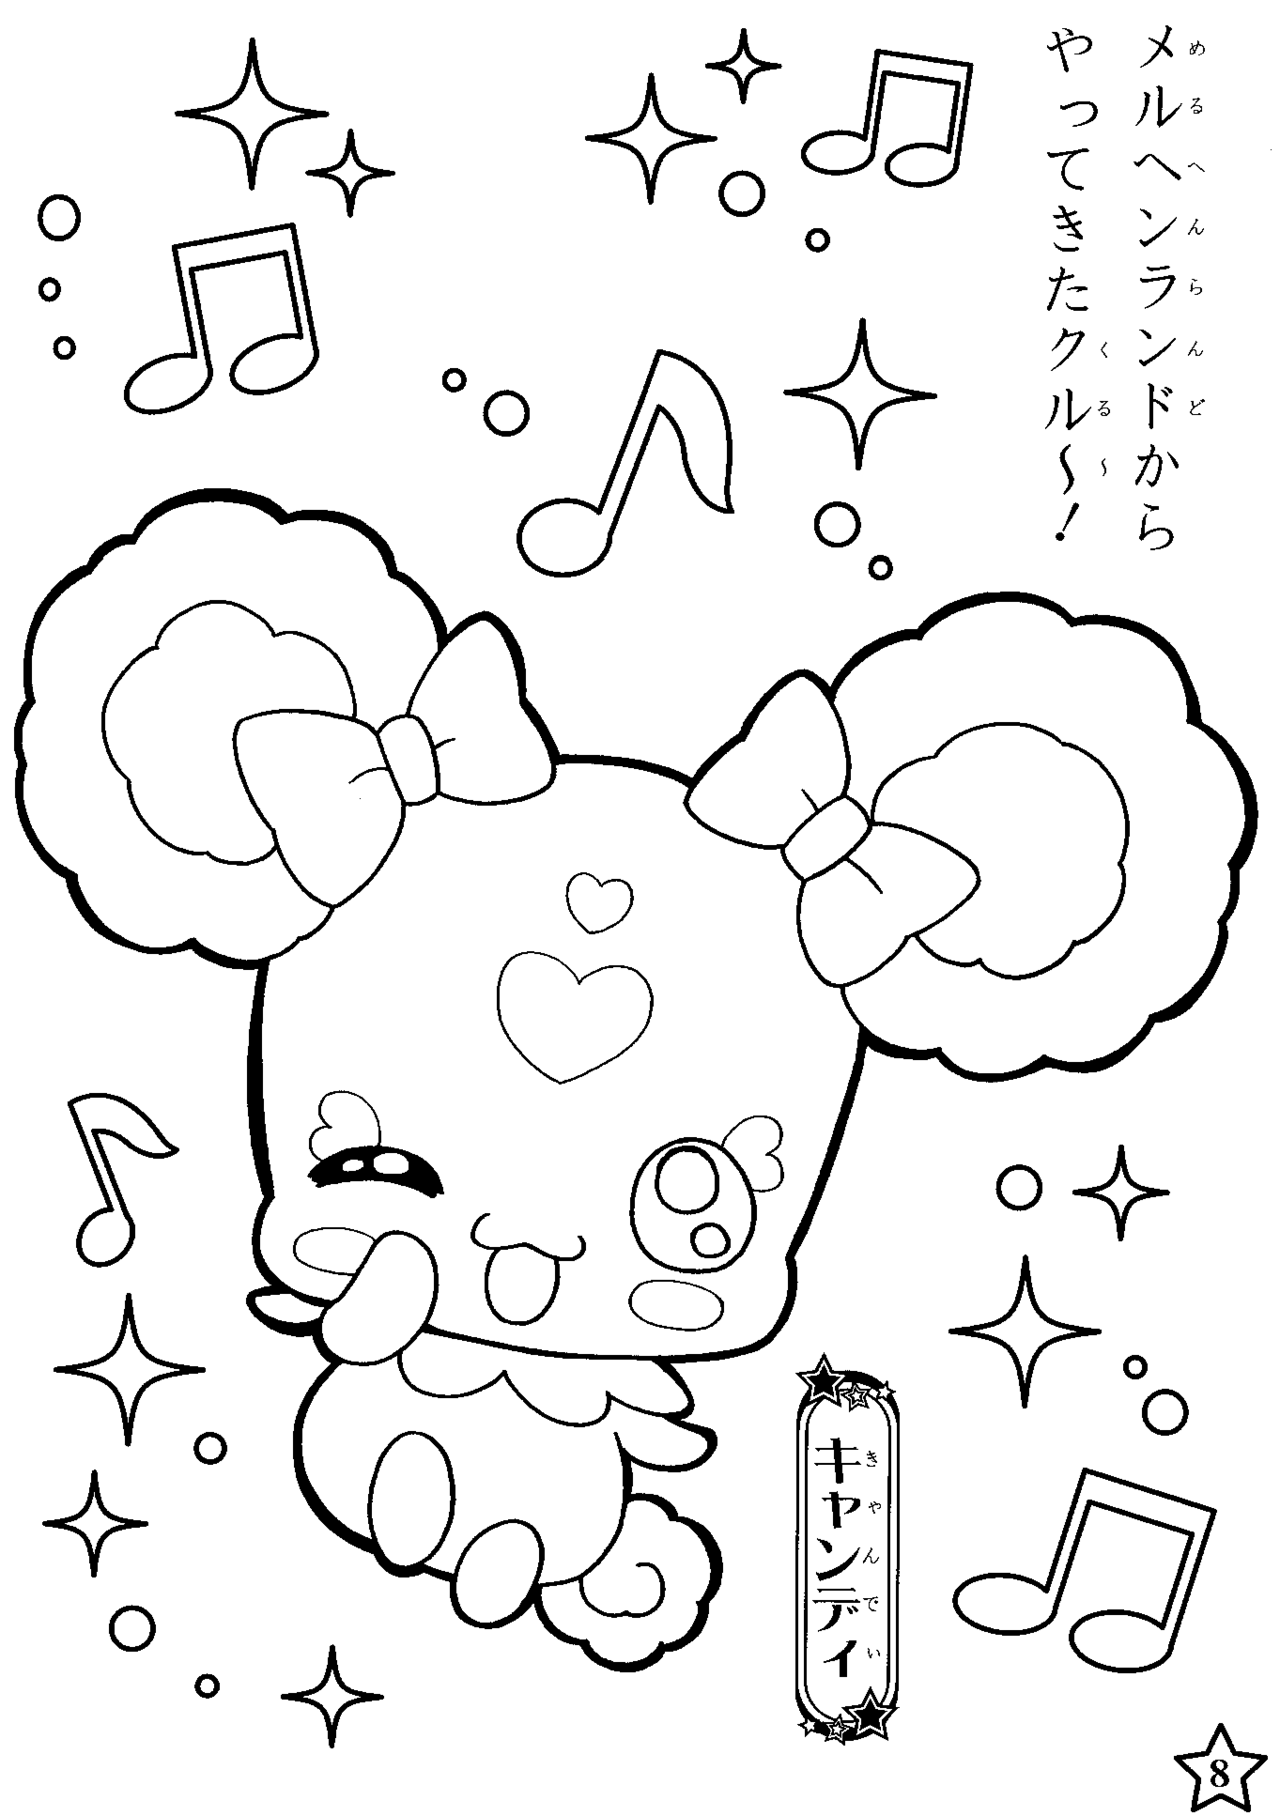 Pretty Cure Coloring Pages Google Search Anime